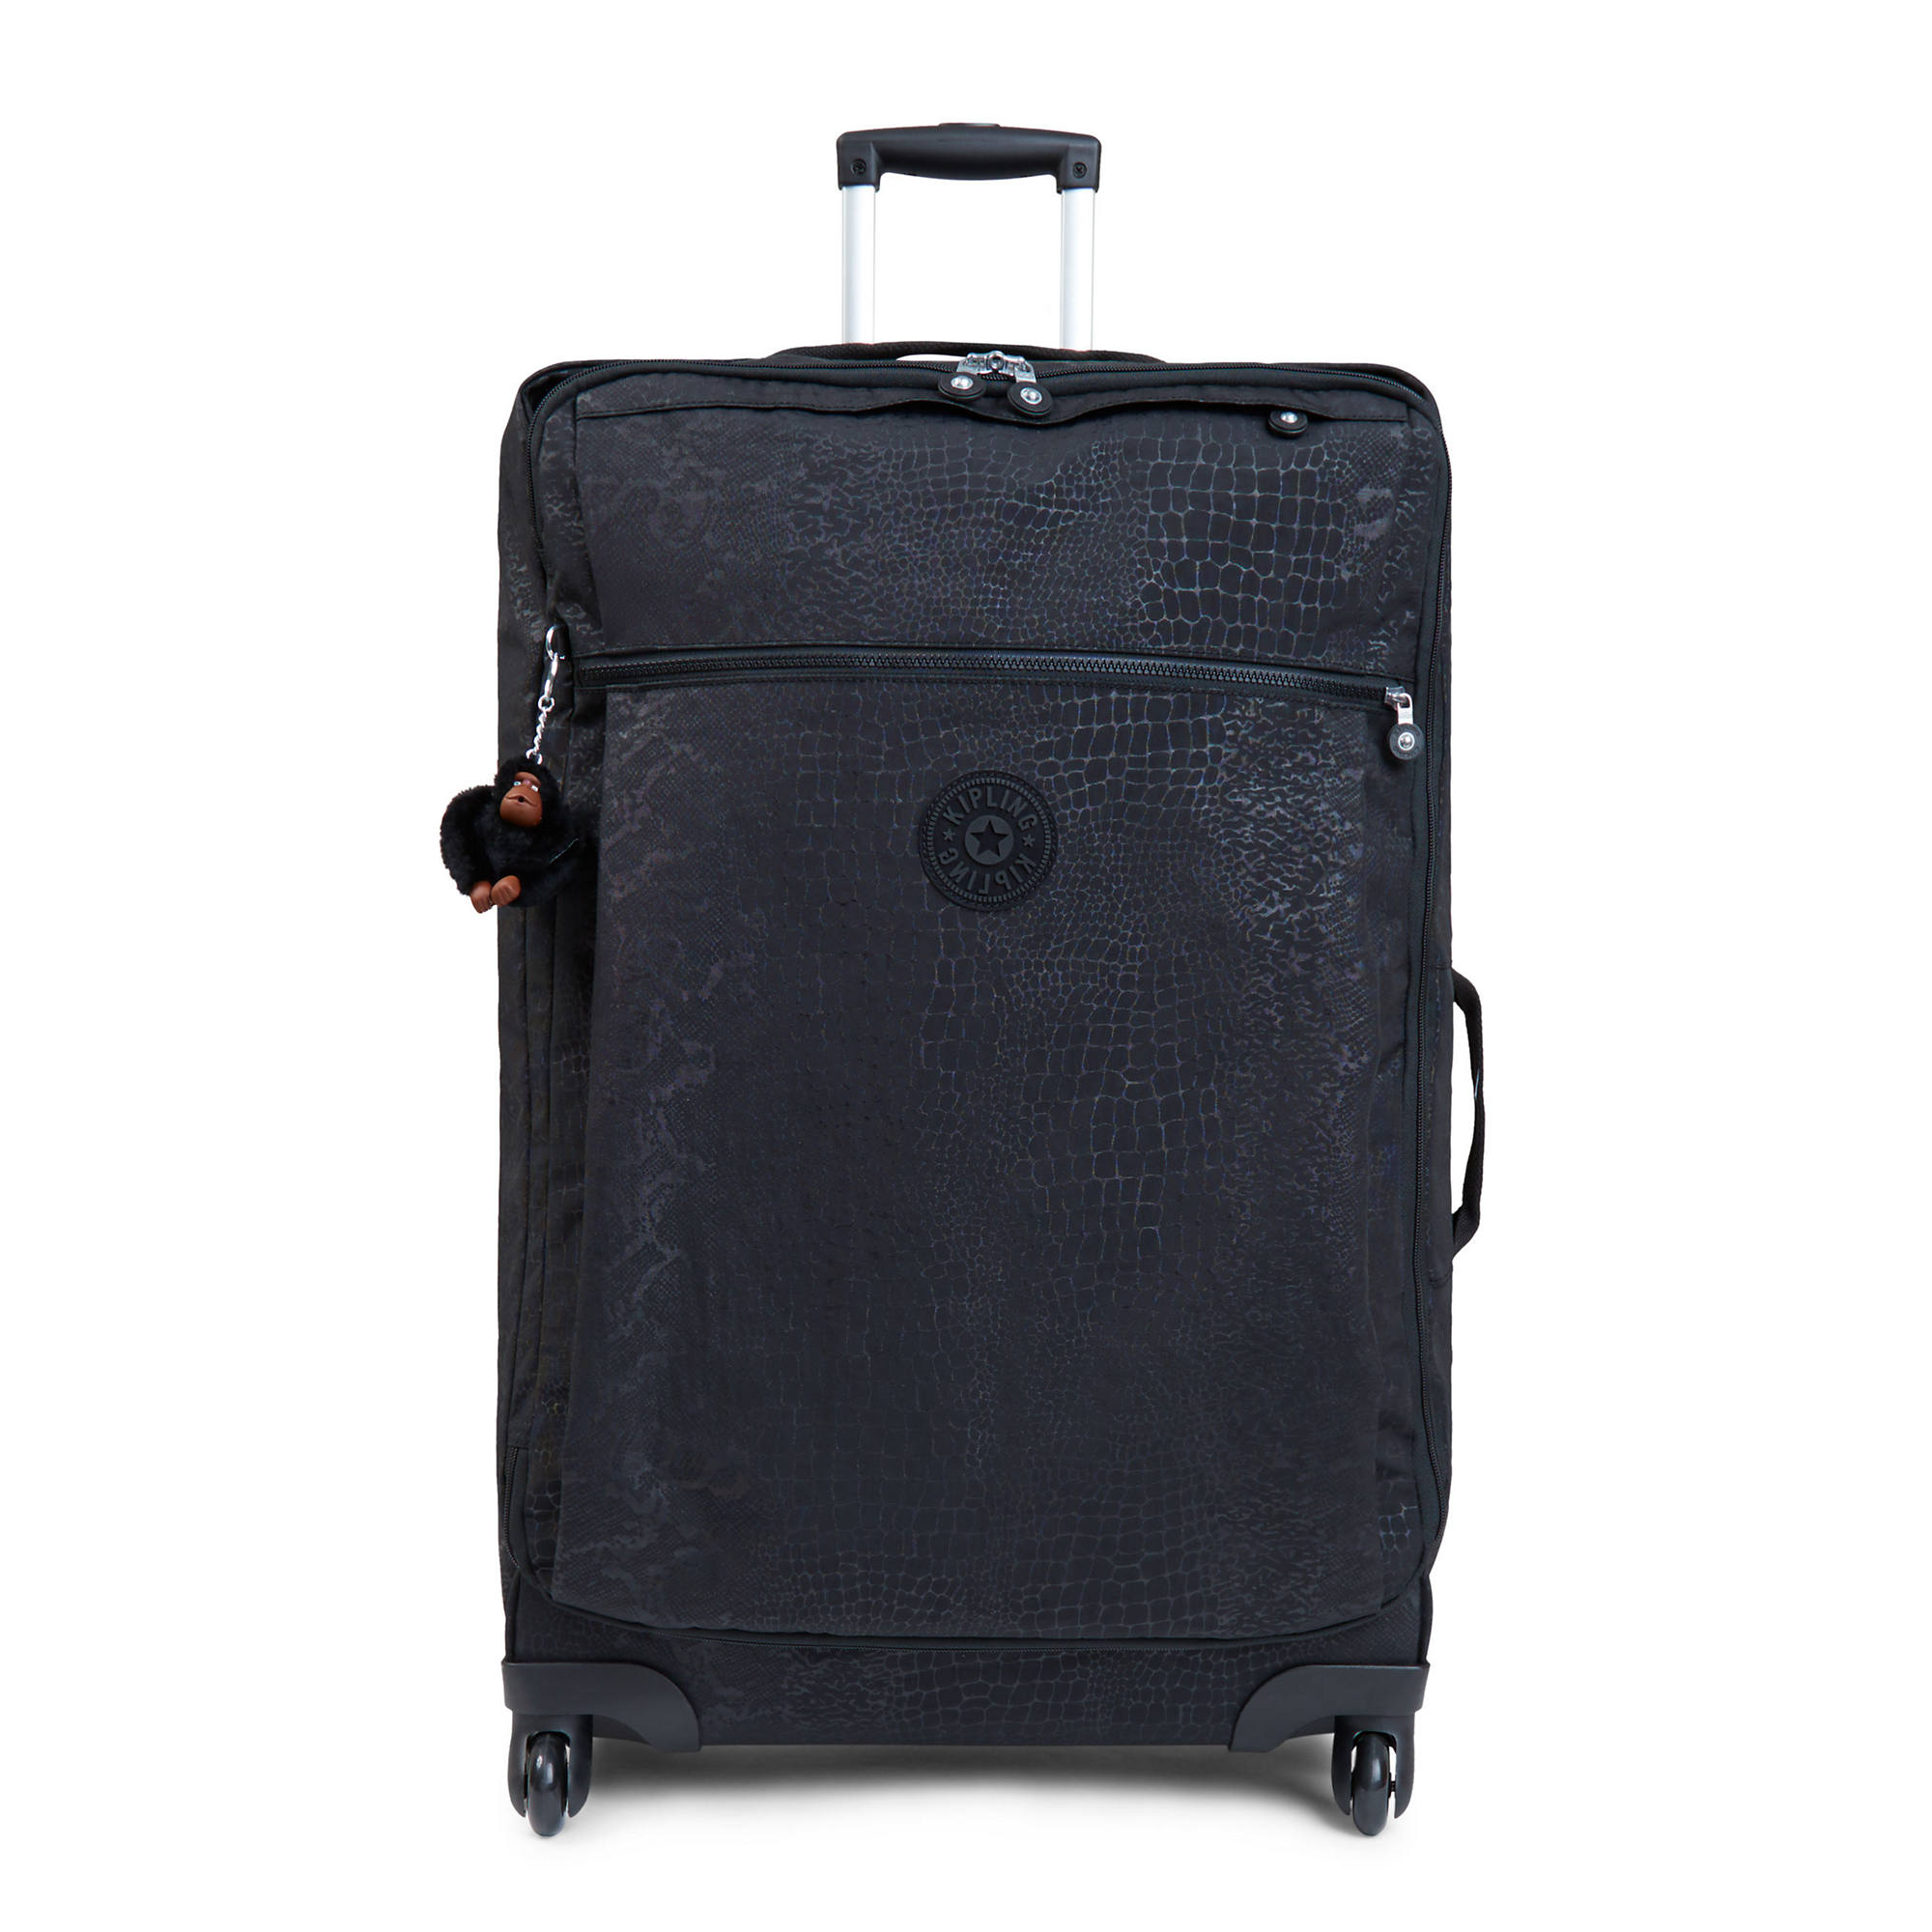 Cute Luggage & Luggage Sets: For Women, Teens & More | Kipling